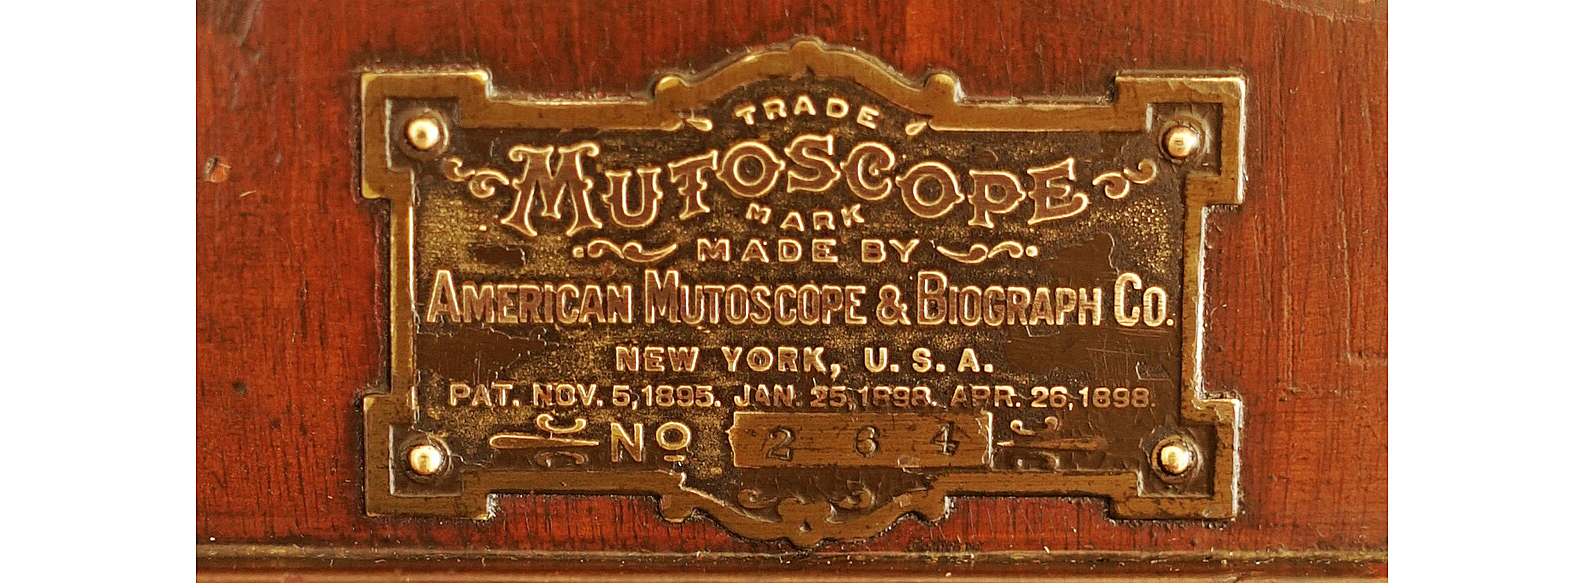 Mutoscope Image3 Featured